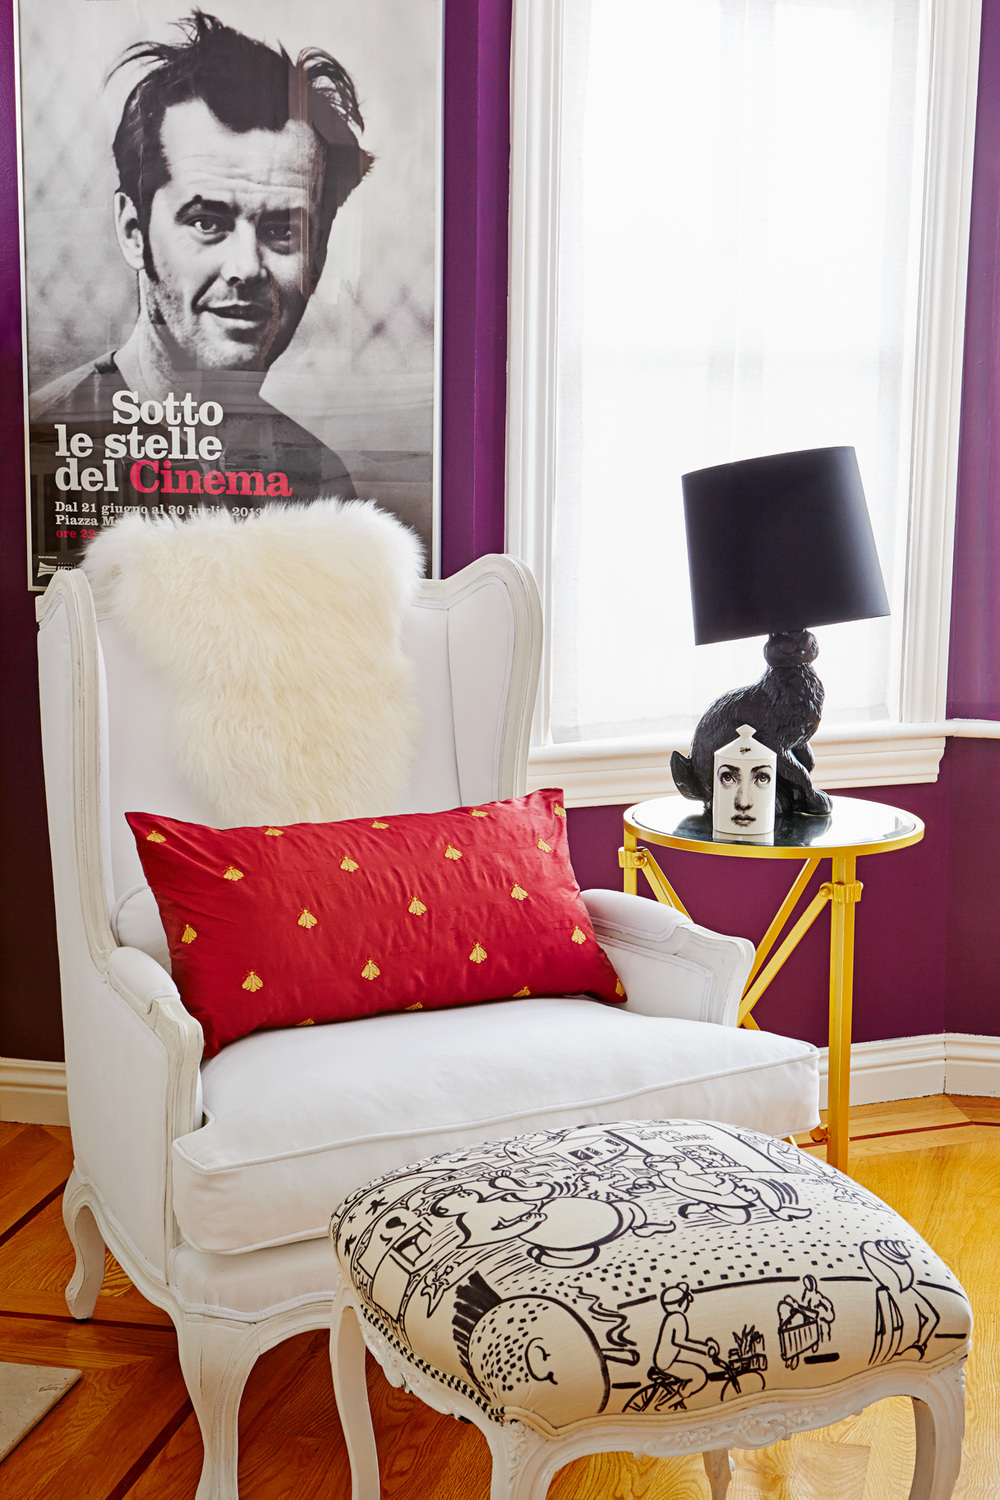 "Wingback ""Lorraine"" Chair, Restoration Hardware; Antique footstool Louis XV style, One King's Lane, custom decorated fabric; Rabbit Lamp, Moooi; Jack Nicholson Poster, Italy."